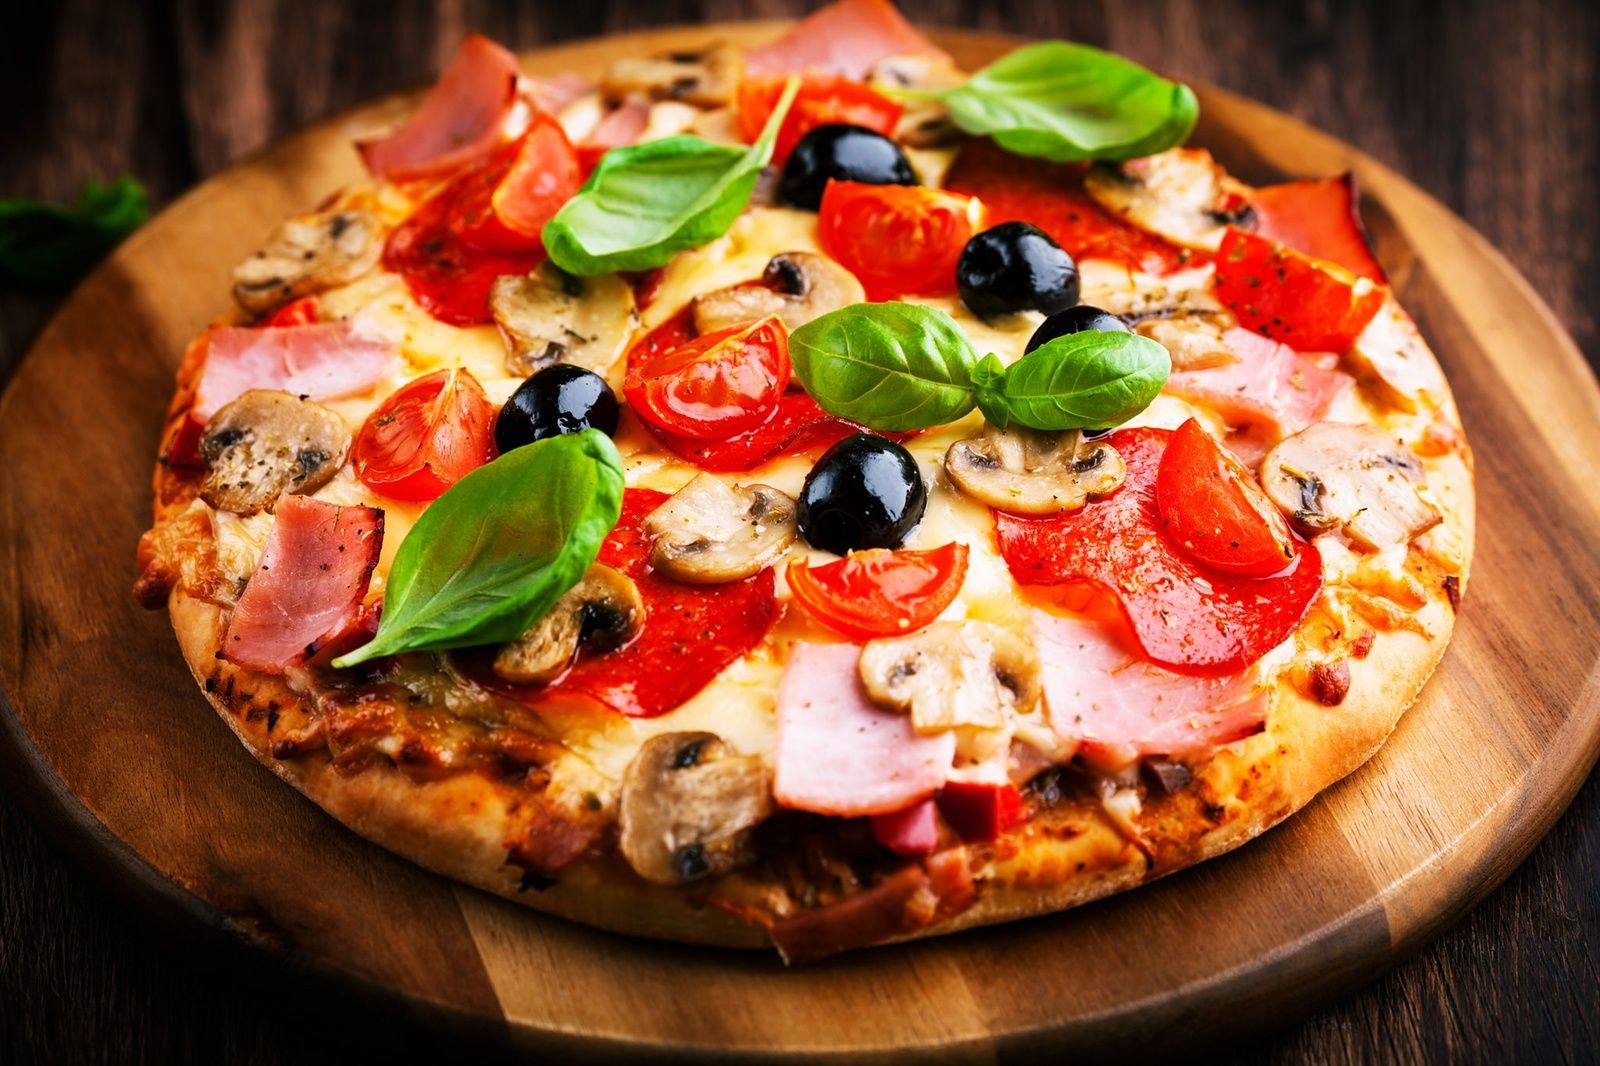 Bon appétit - Pizza - Nourriture - Wallpaper - Free